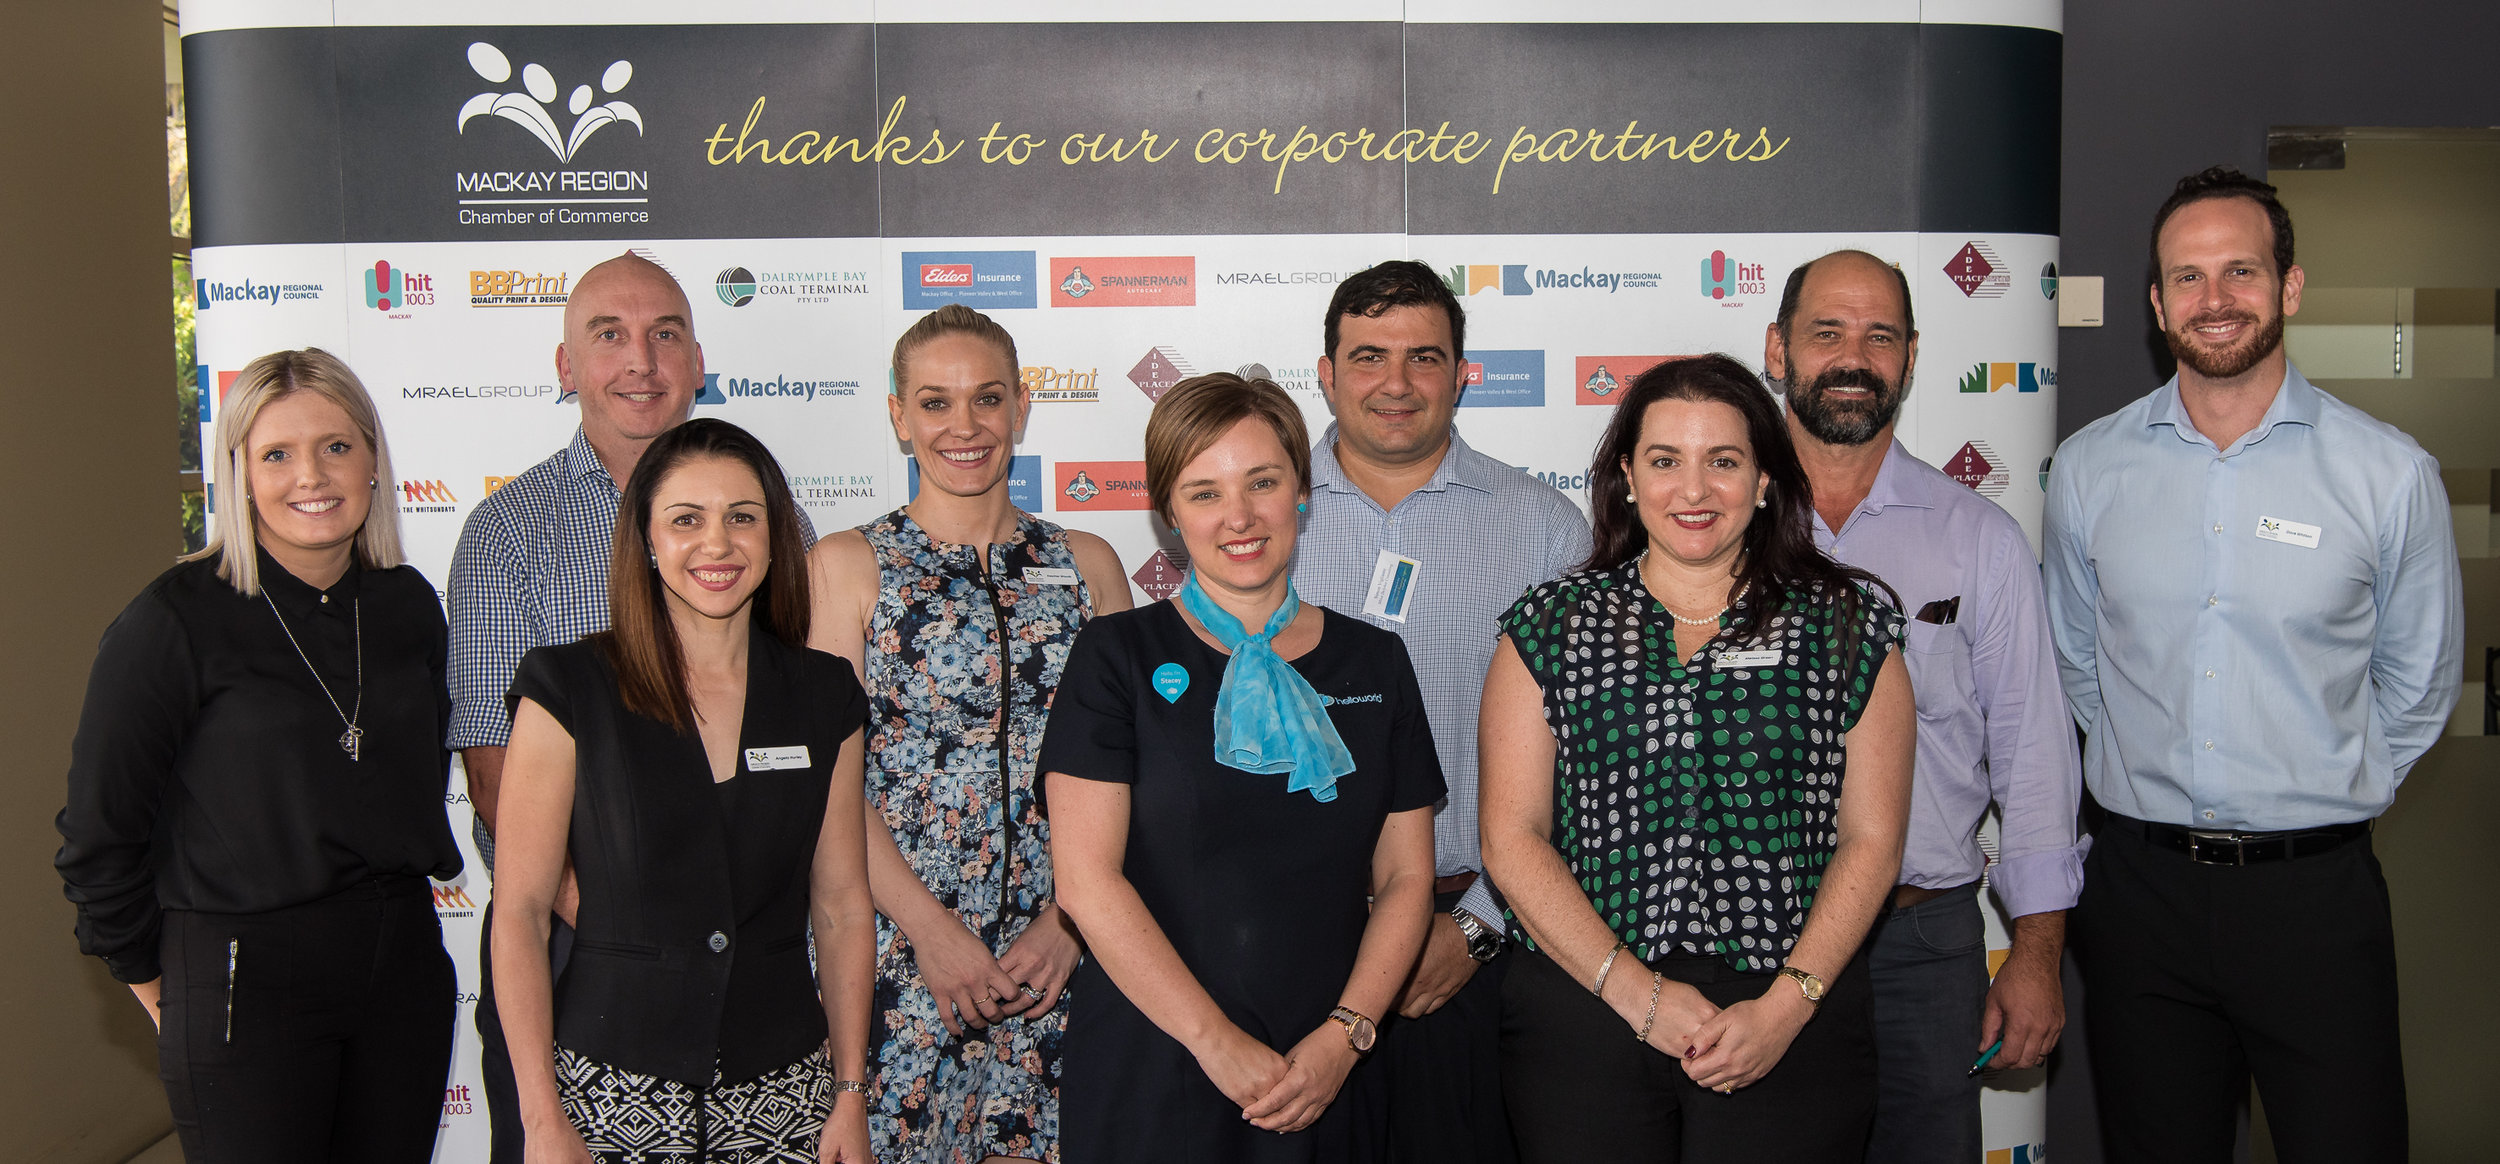 Mackay Region of Chamber's management committee for 2017/2018; Victoria Gracie (Opteon Property Group), Glenn Byron (National Australia Bank), Angela Hurley (McKays Solicitors), Heather Woods (Zoetic), Stacey Cole (helloworld Mt Pleasant), Simon Vigliante (Miles Dolphin Consulting), Melissa Green (BOQ Mackay City), Peter Jones-Trifelly (Frangipani Enterprises Pty Ltd) and Dave Whitson (Whitson Dawson).